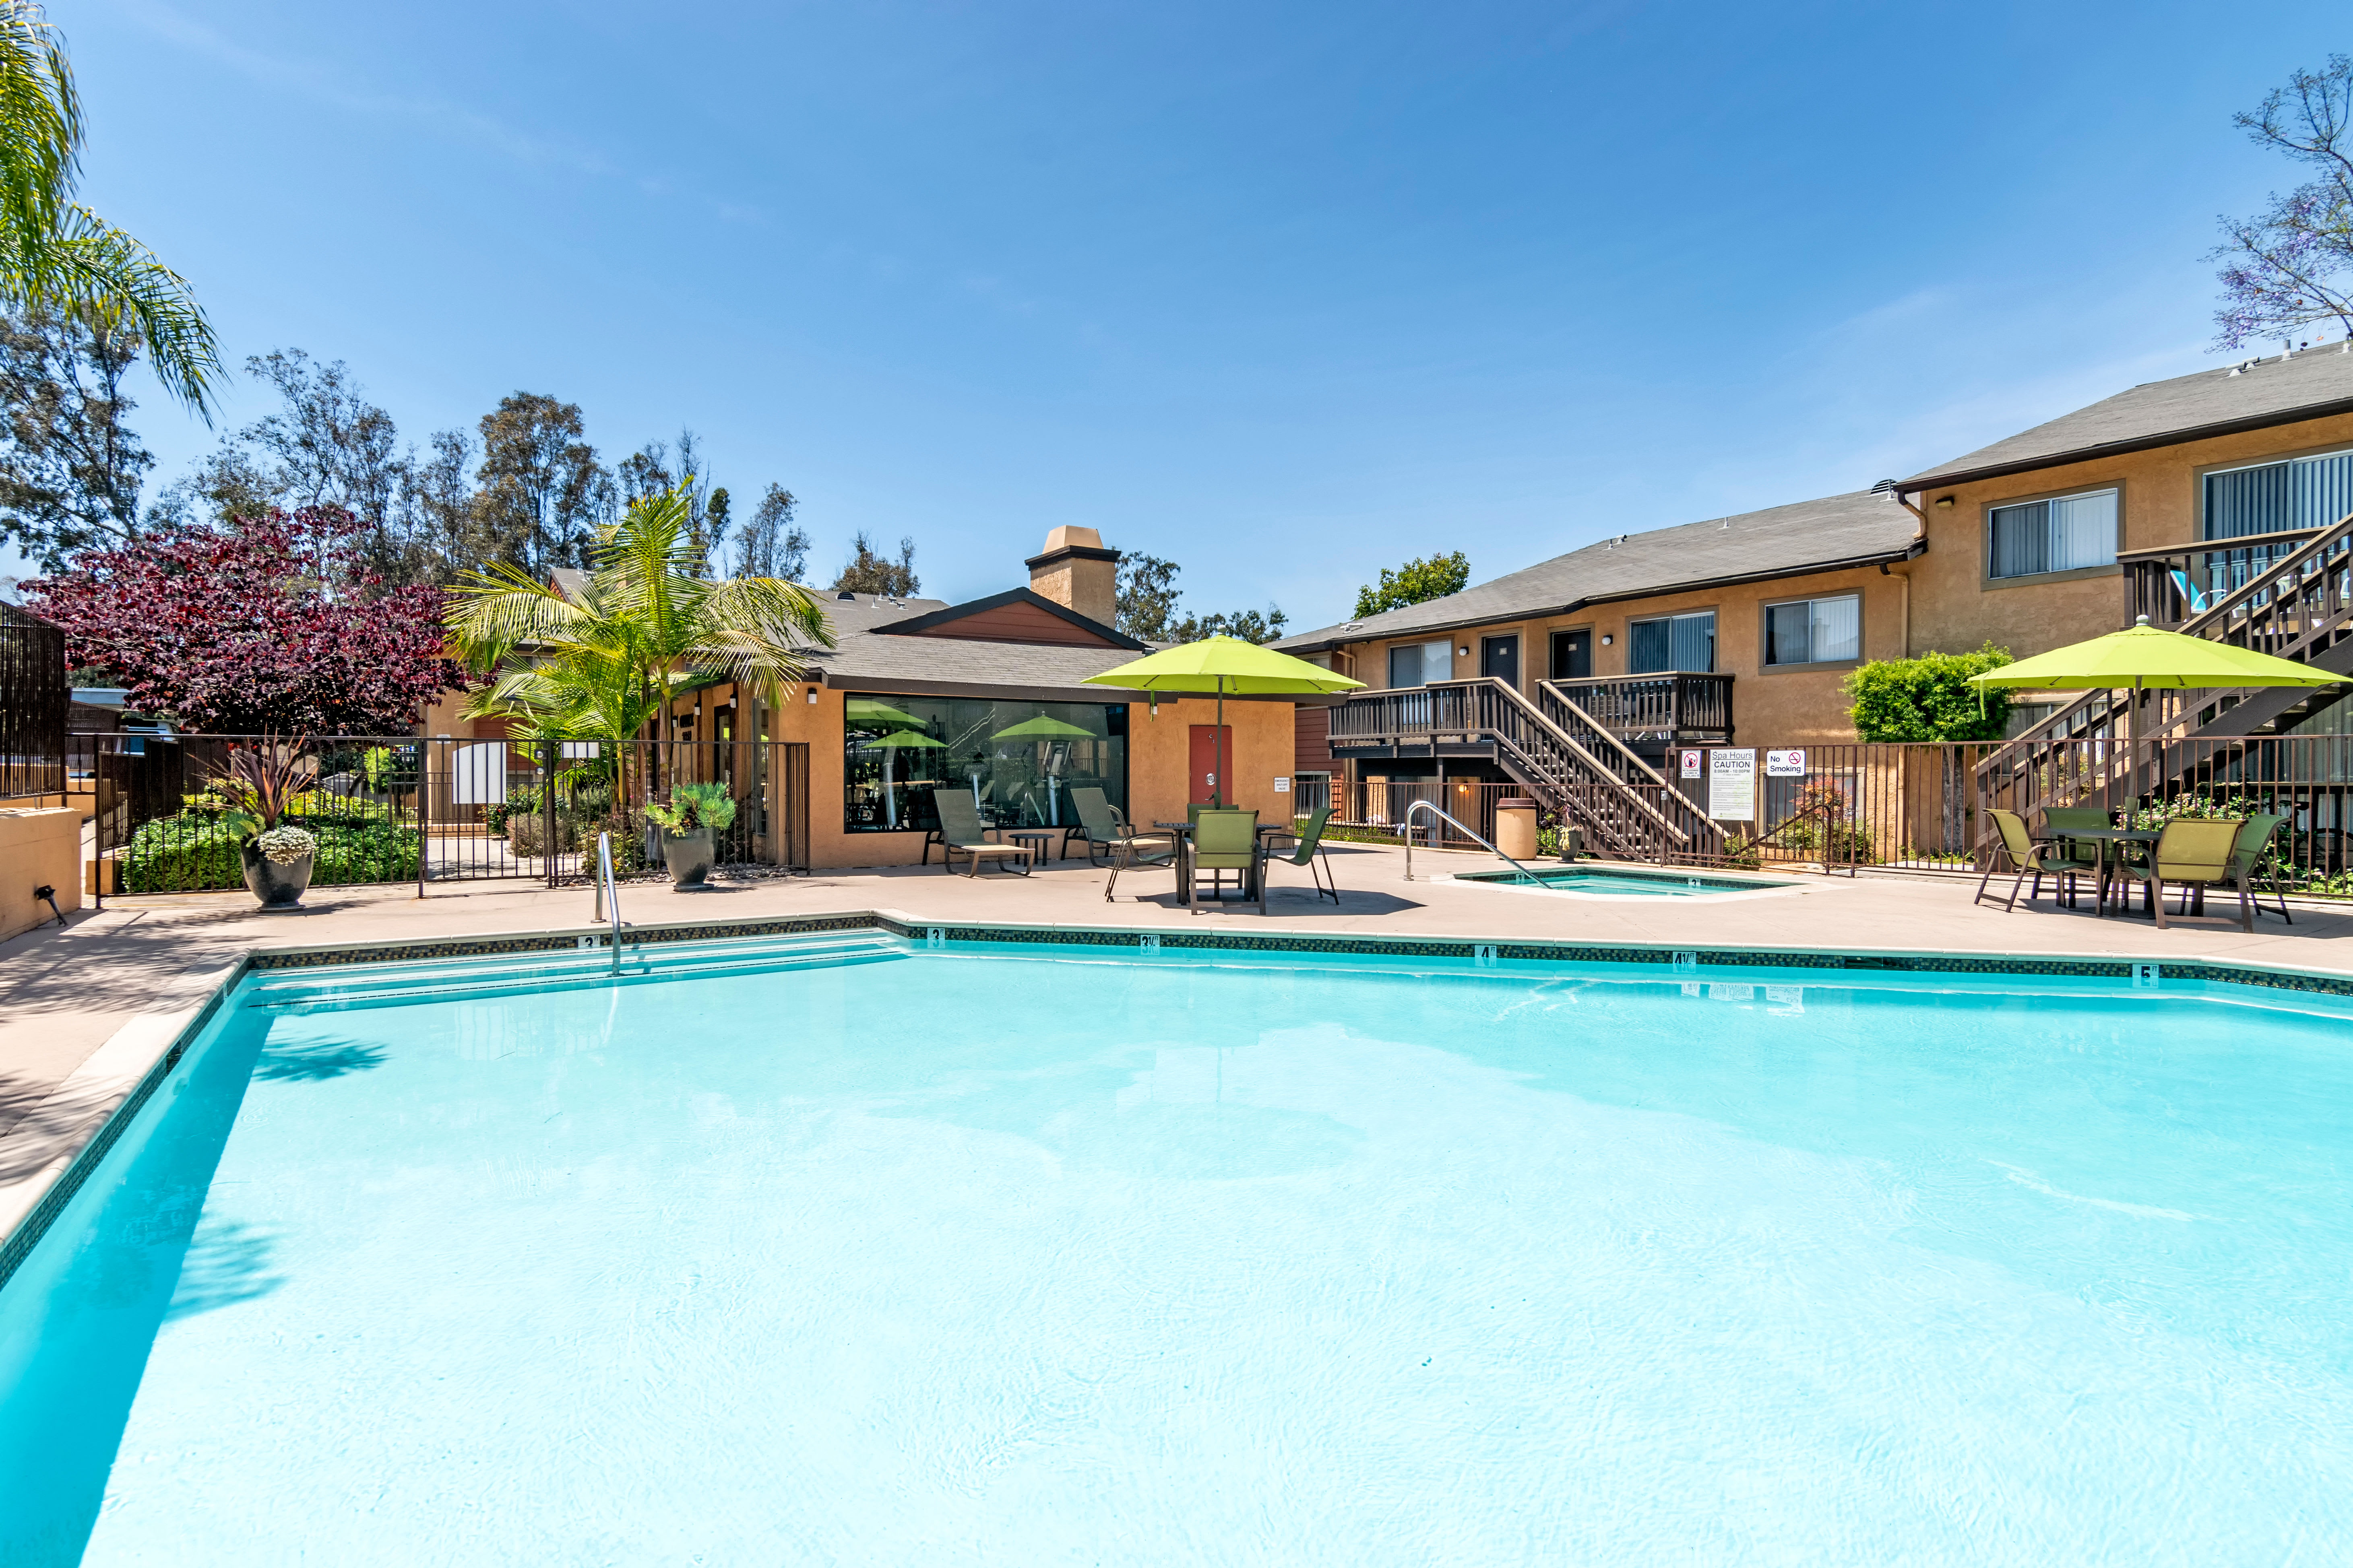 Accessibility statement at Hillside Terrace Apartments in Lemon Grove, California